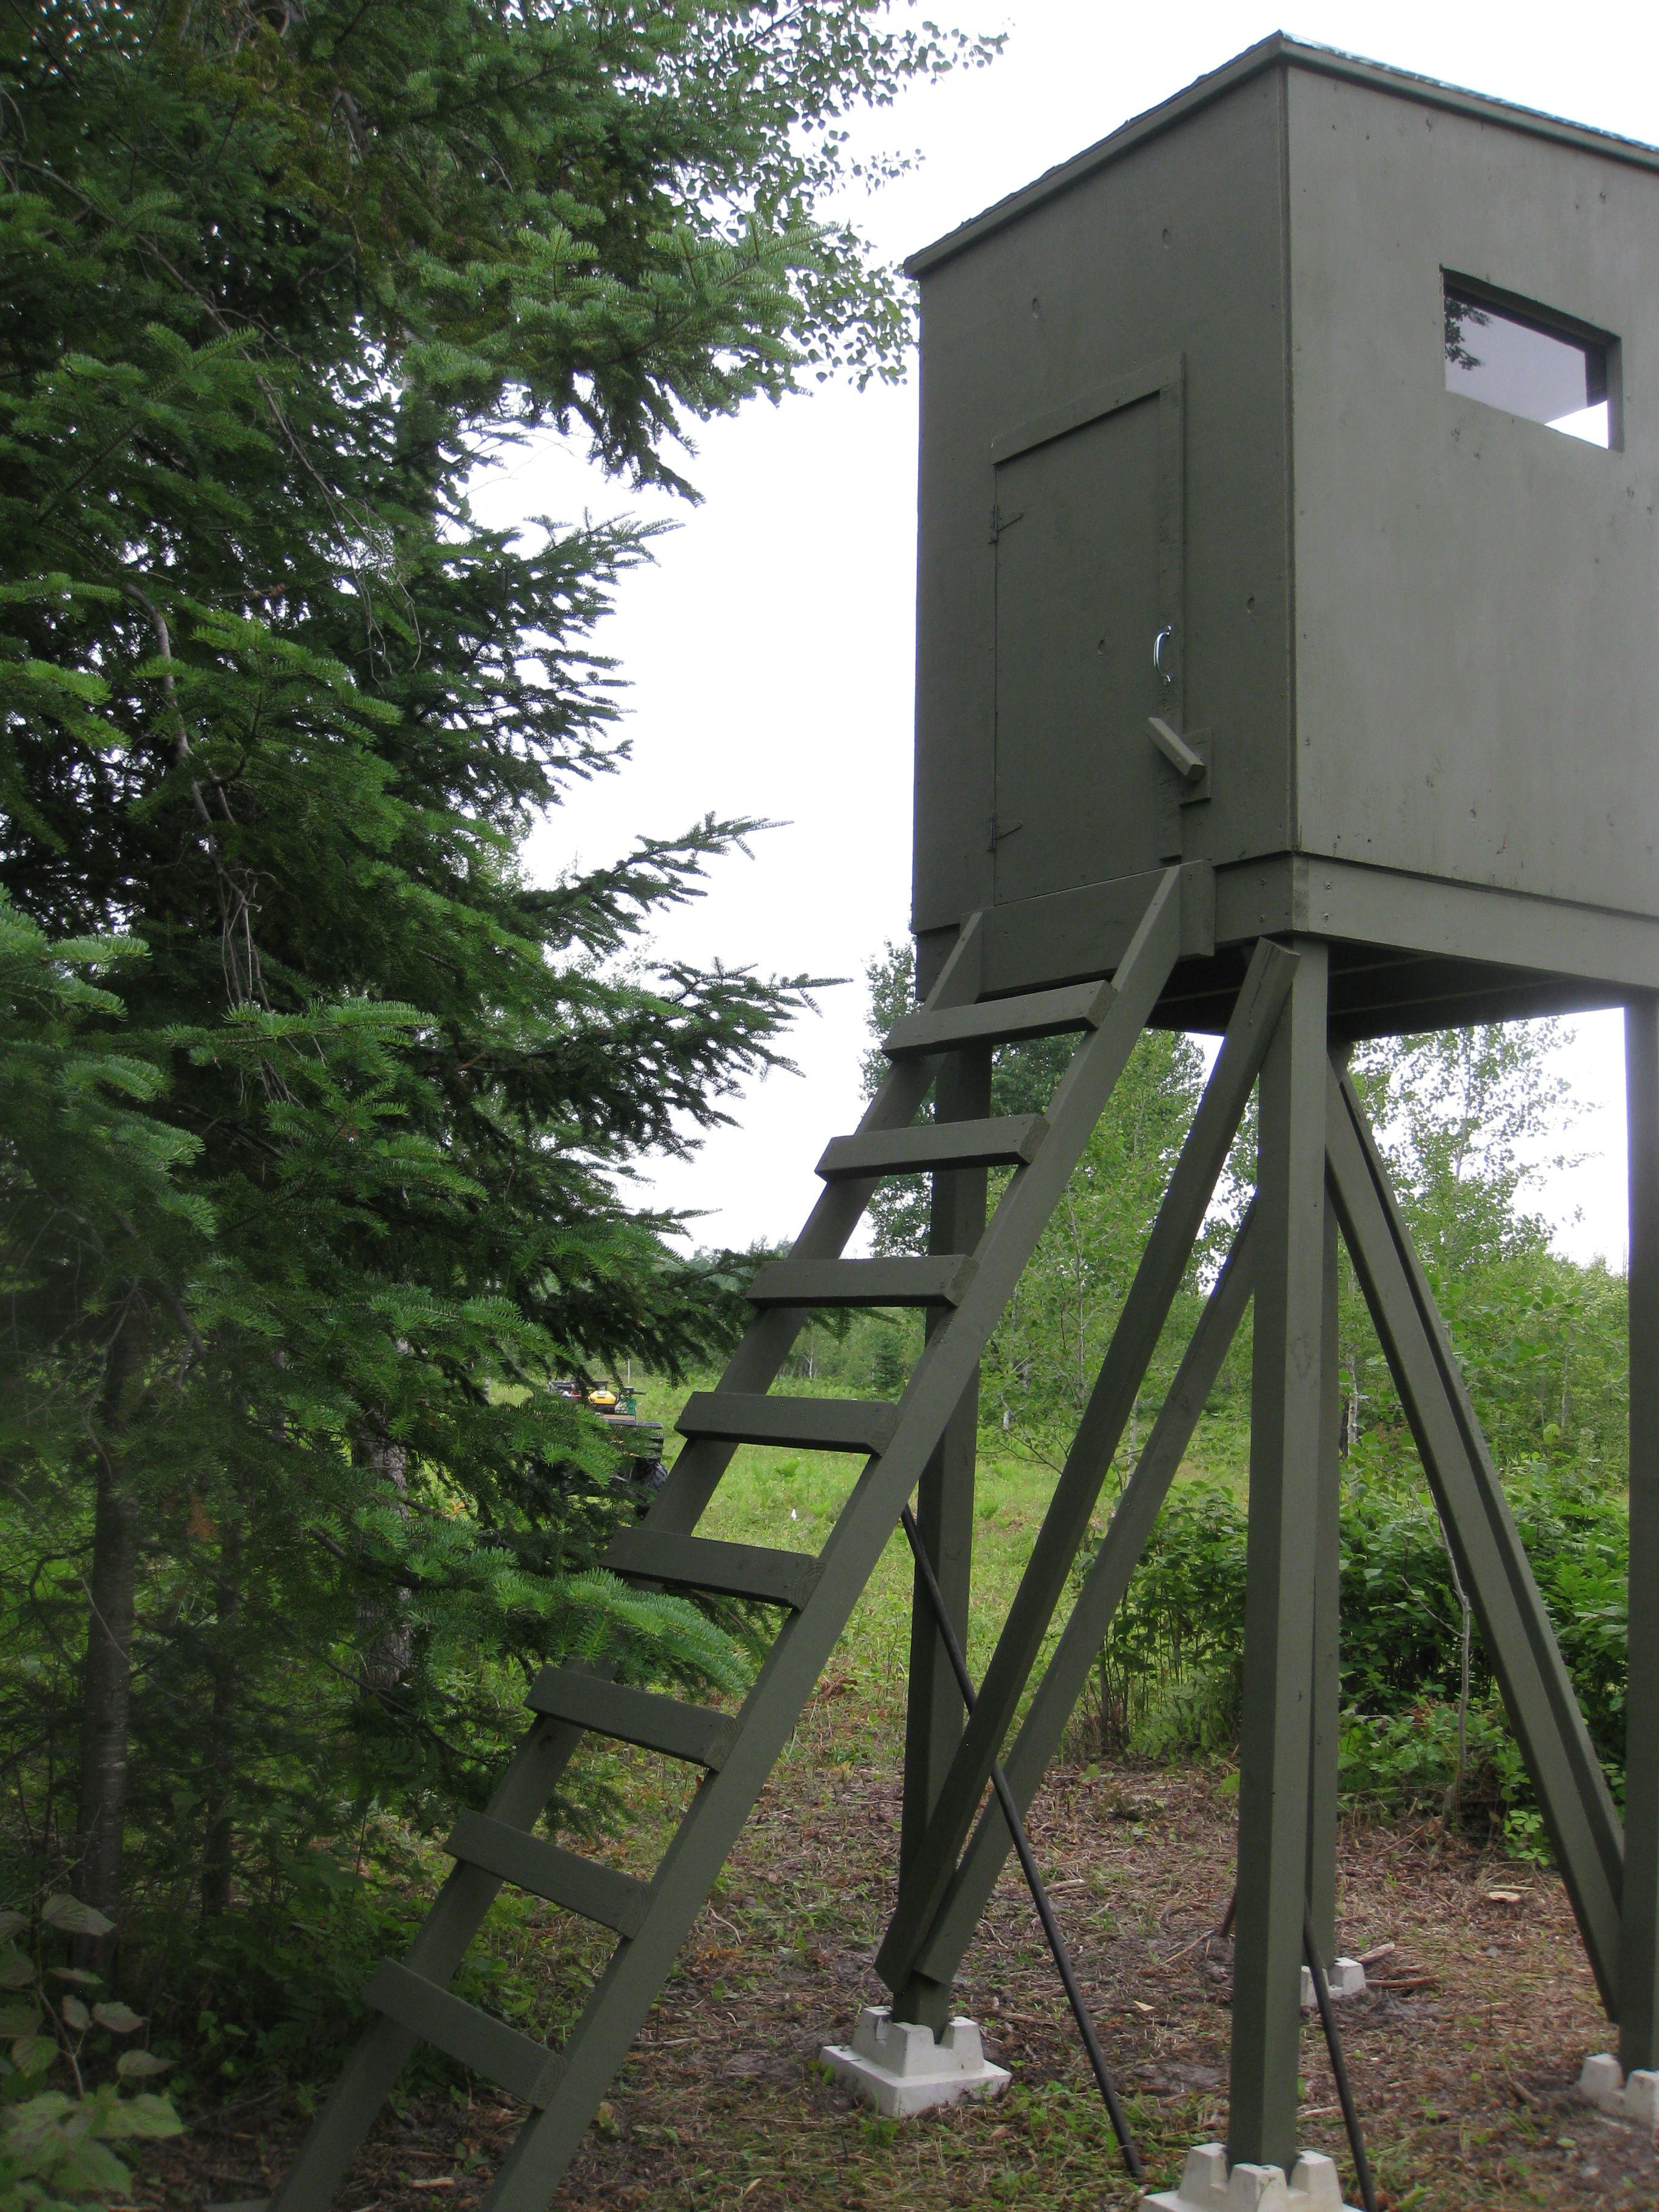 Back View Of Our New Tower Stand D Deer Hunting Blinds Deer Hunting Stands Whitetail Deer Hunting